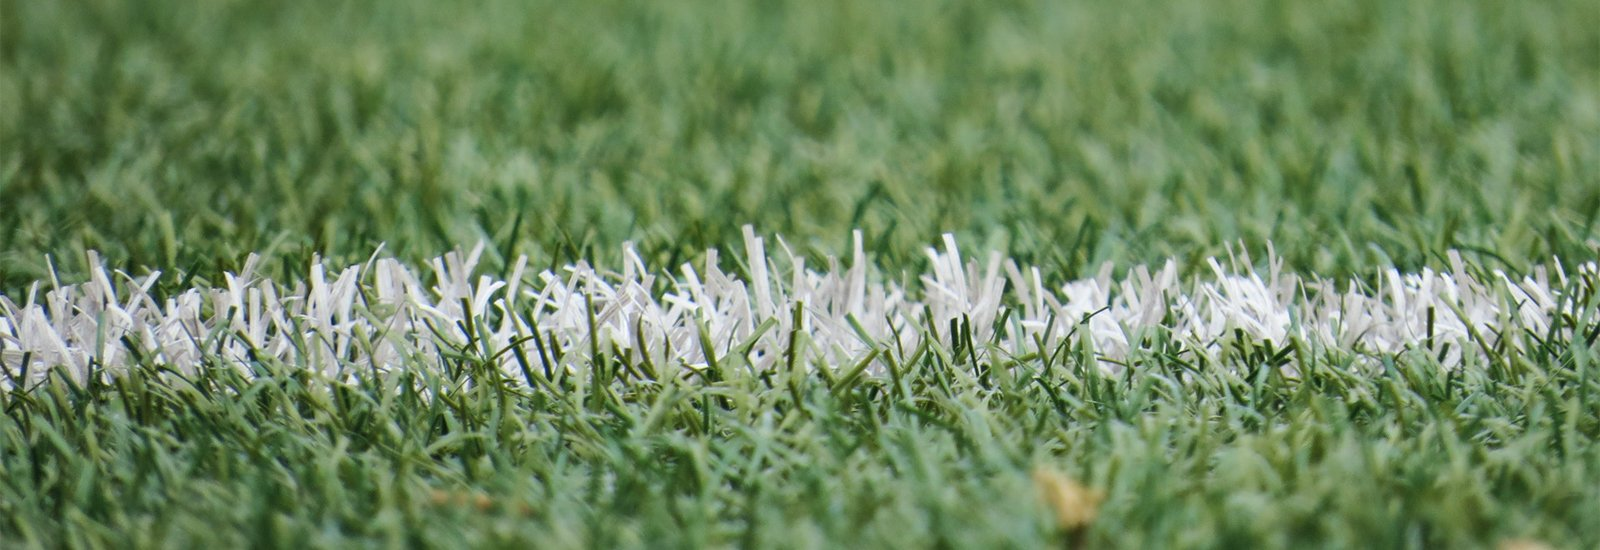 Close-up image of a sports field.